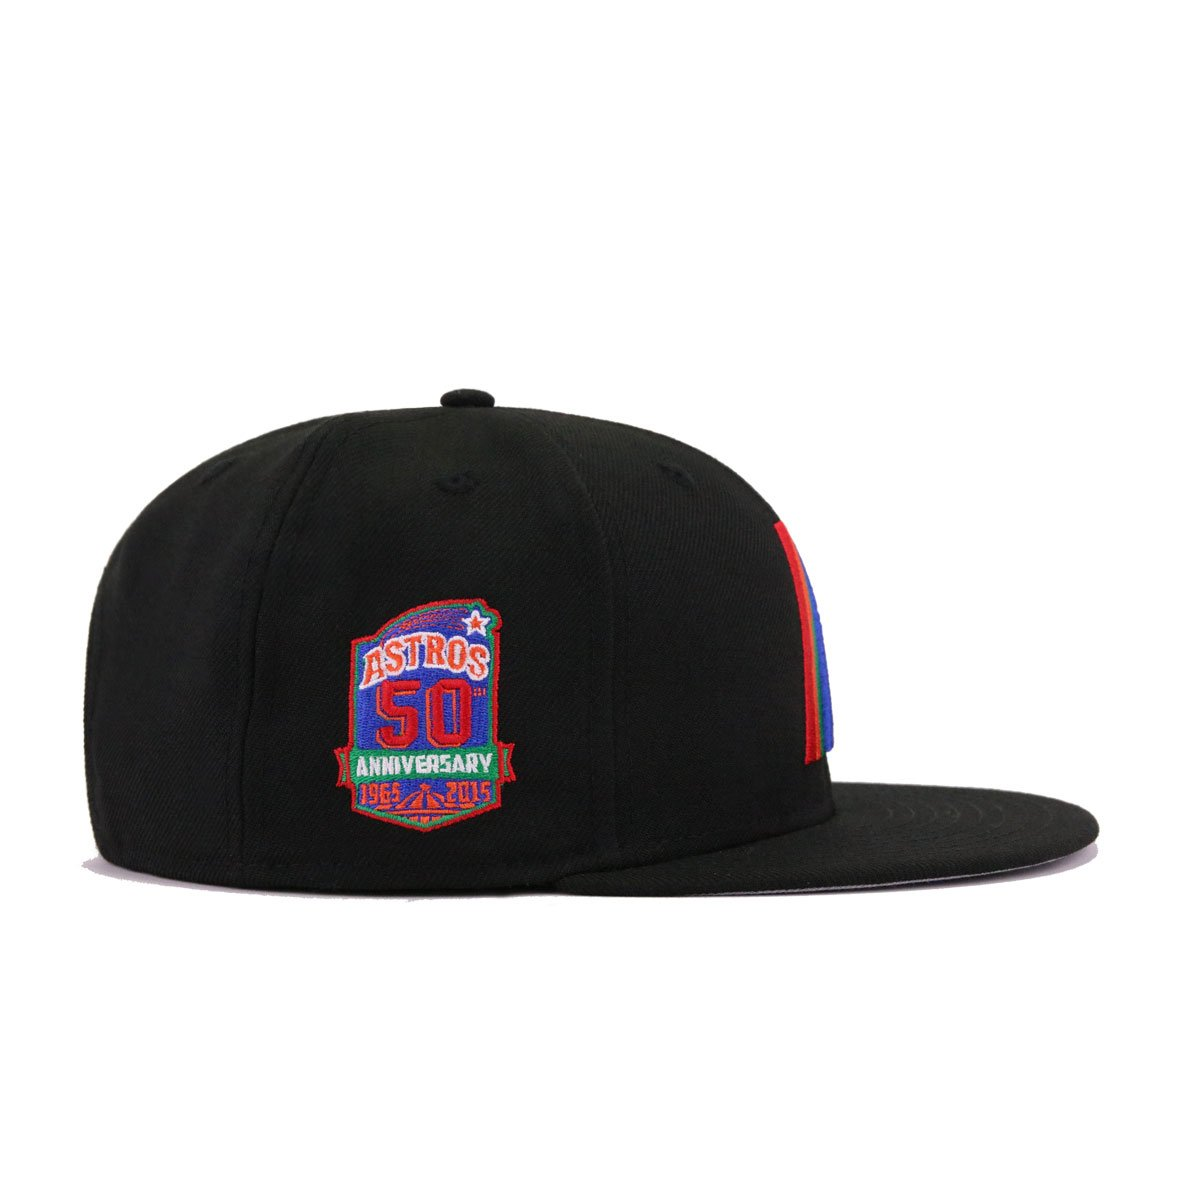 Houston Astros Black Chow Blue Kelly Green Orangeade Scarlet 50th Anniversary New Era 9Fifty Snapback